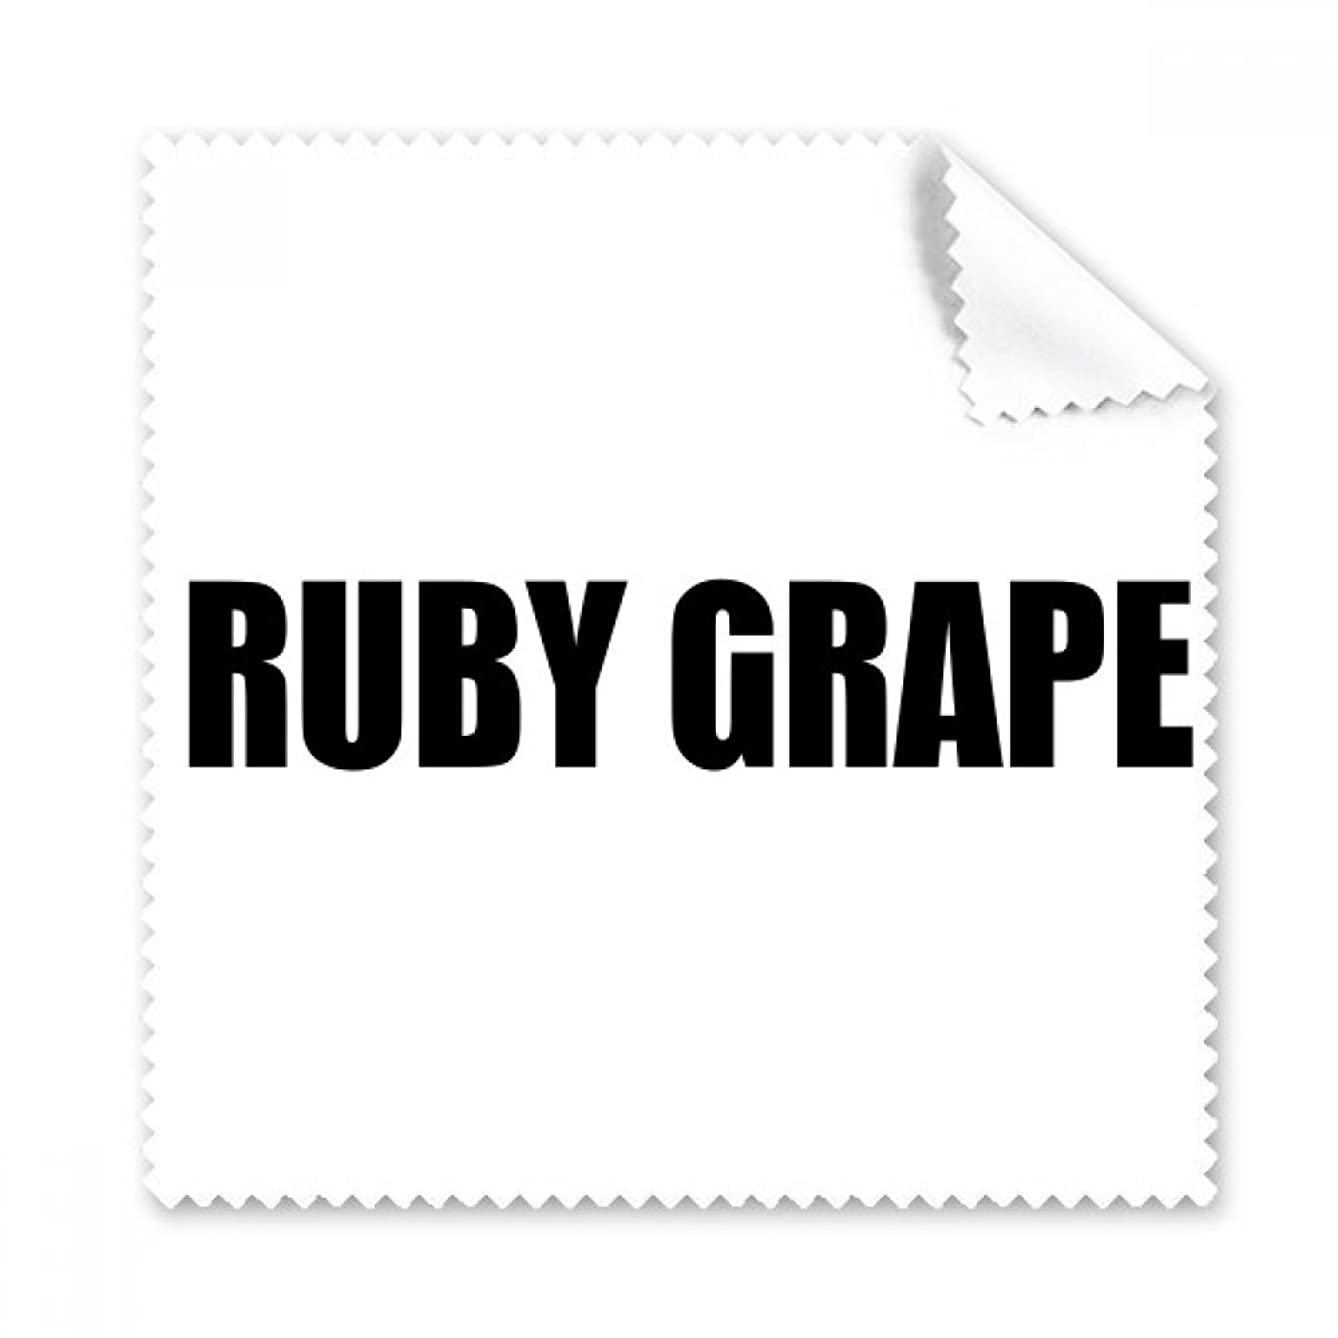 Ruby Grape Fruit Name Foods Glasses Cloth Cleaning Cloth Phone Screen Cleaner 5pcs Gift